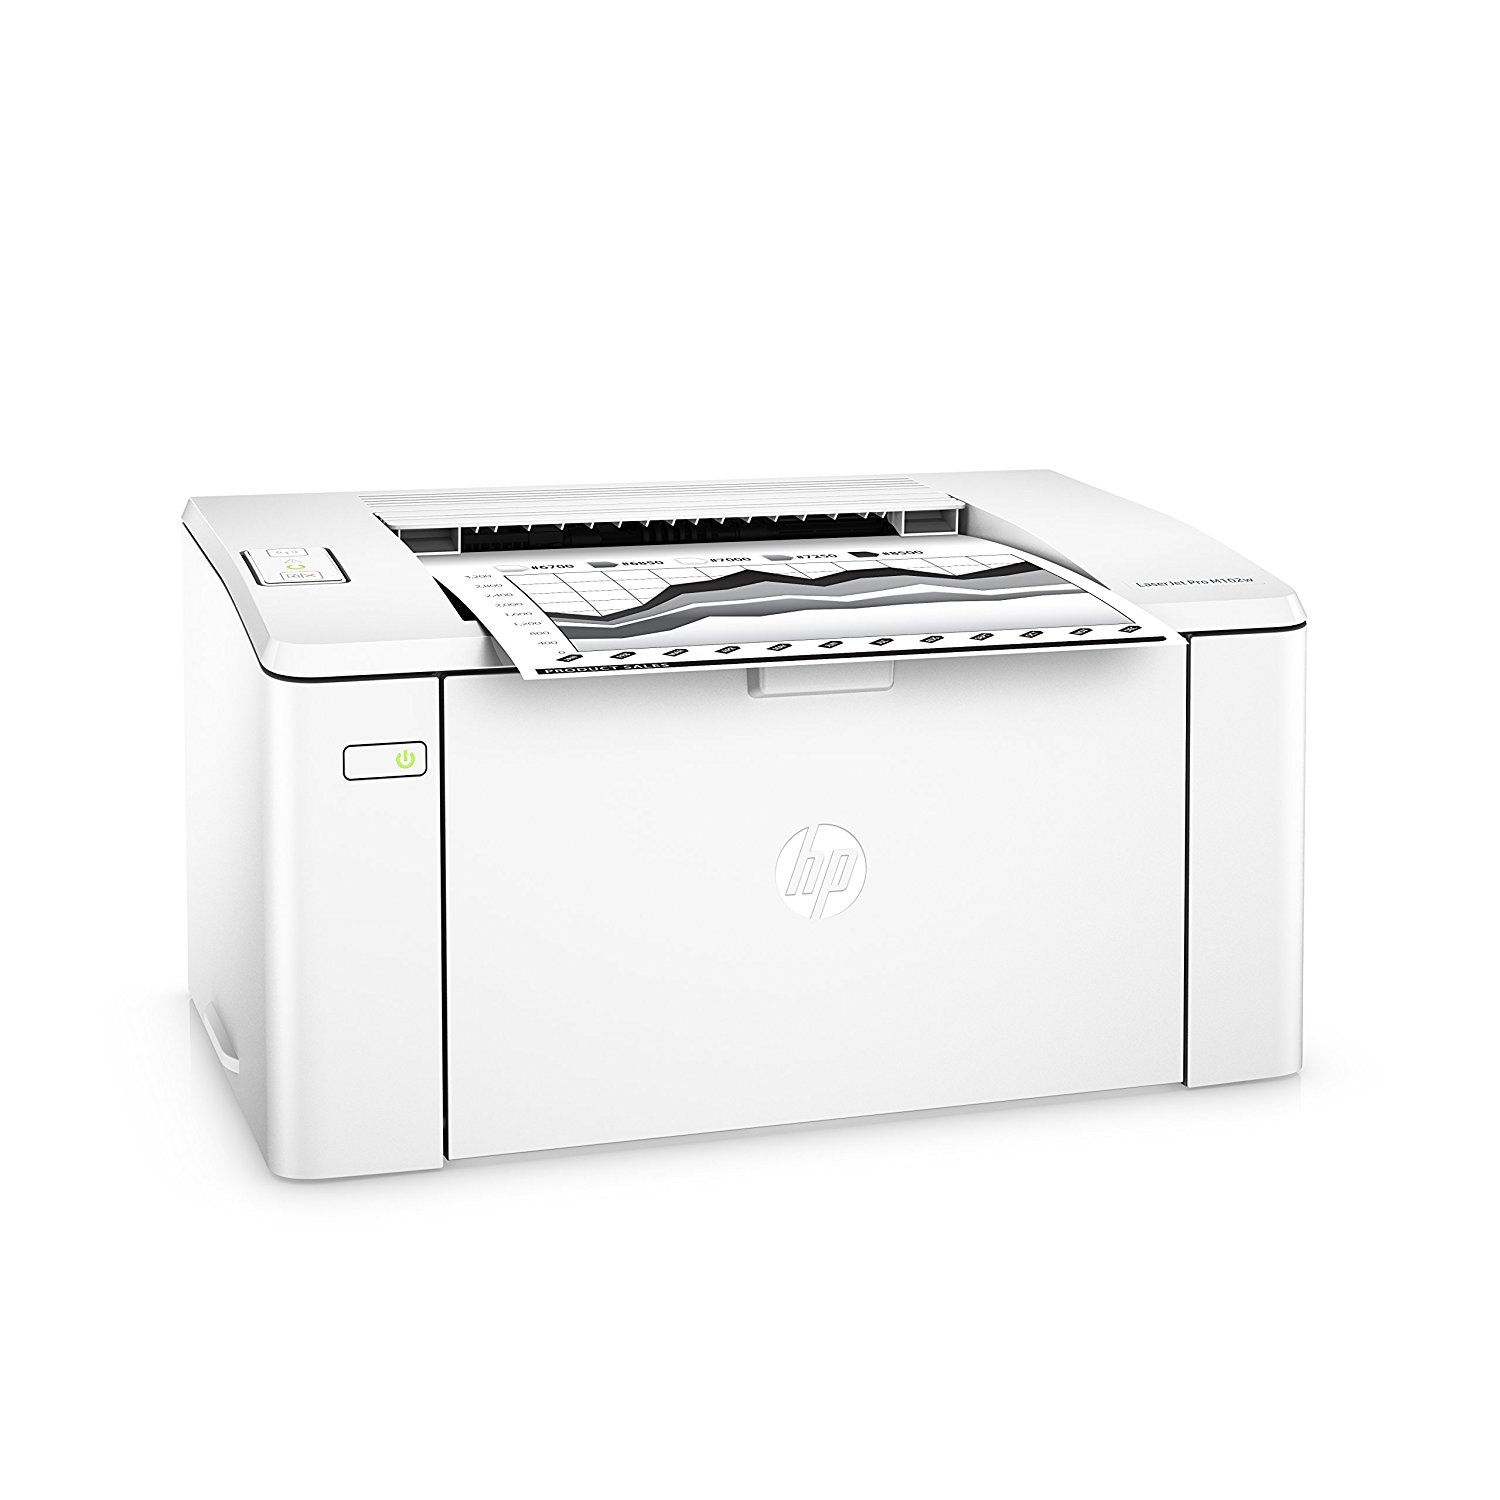 hp laserjet pro m102w monochrome wireless laser printer review